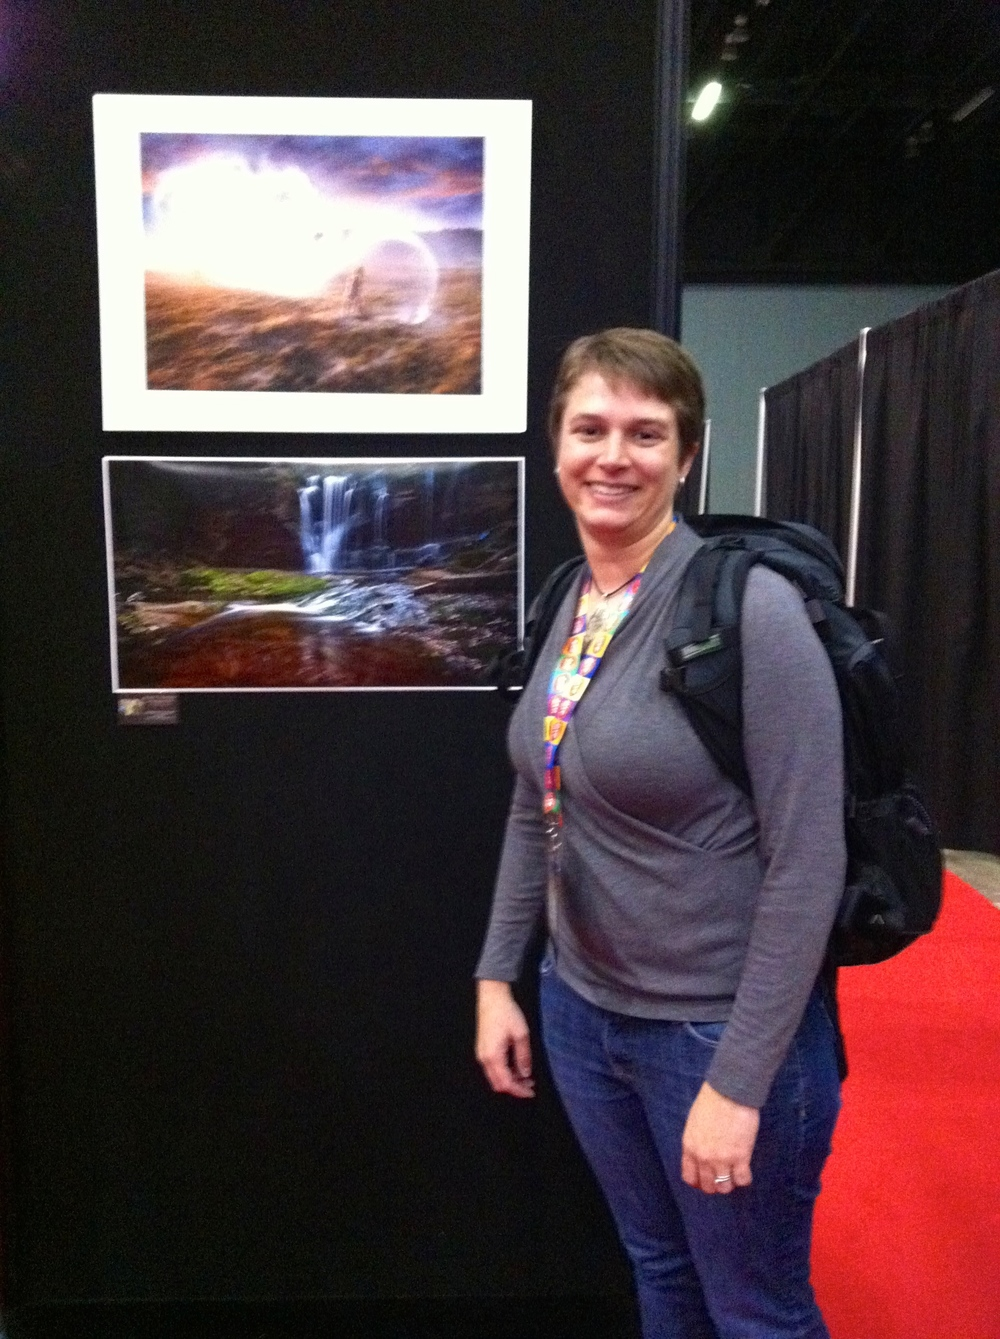 Standing in front of the winning photograph in the Expo Hall. You can't blame me for the blurry photo - I obviously didn't take it! But you get the idea.... ;-)